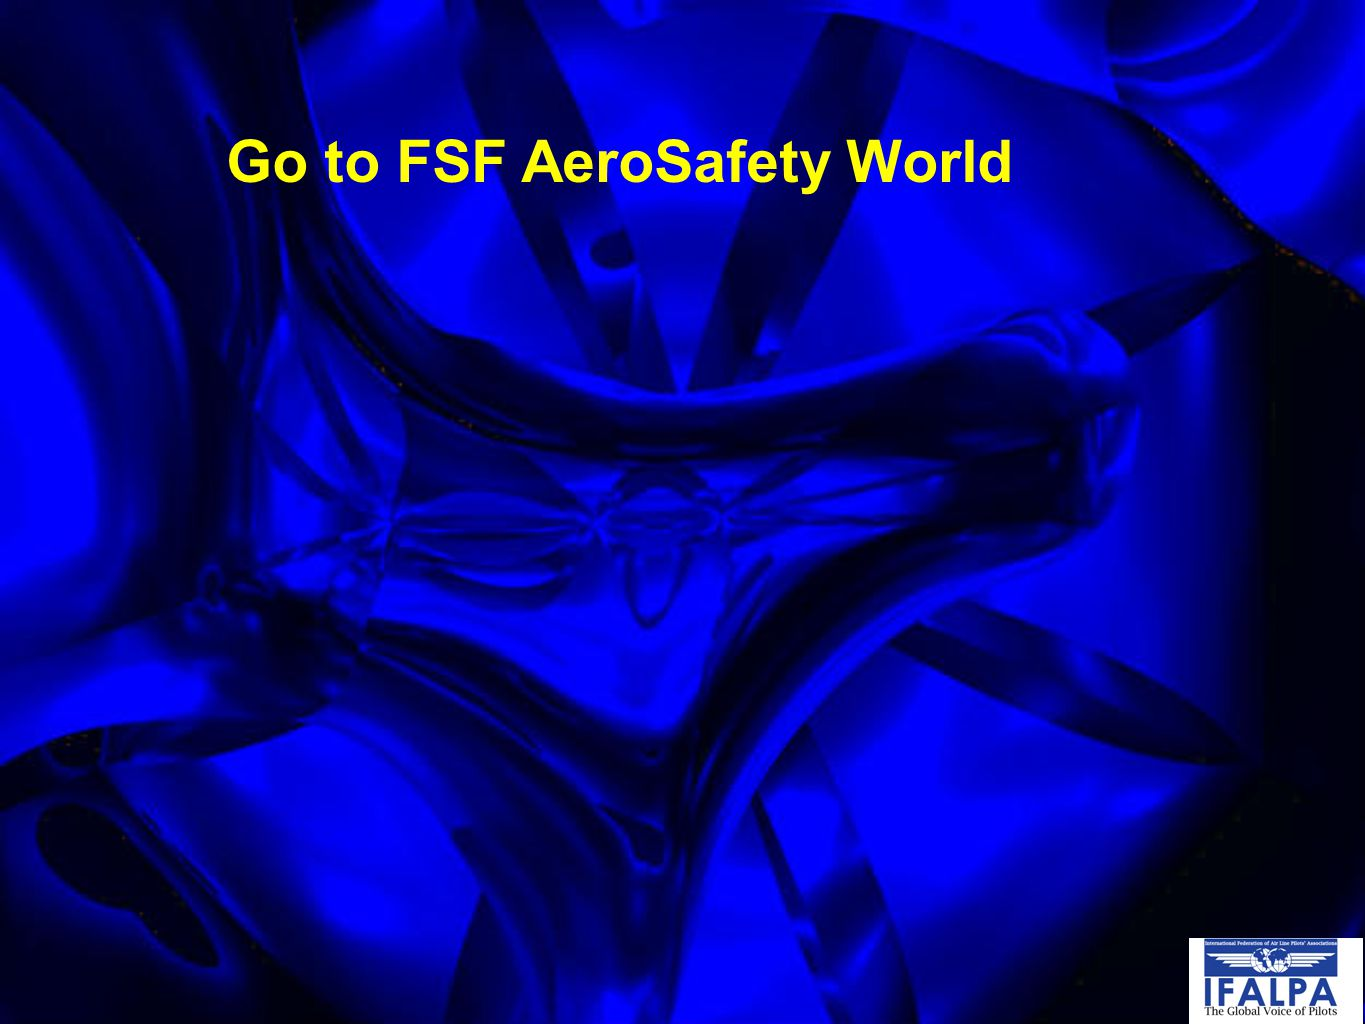 Go to FSF AeroSafety World